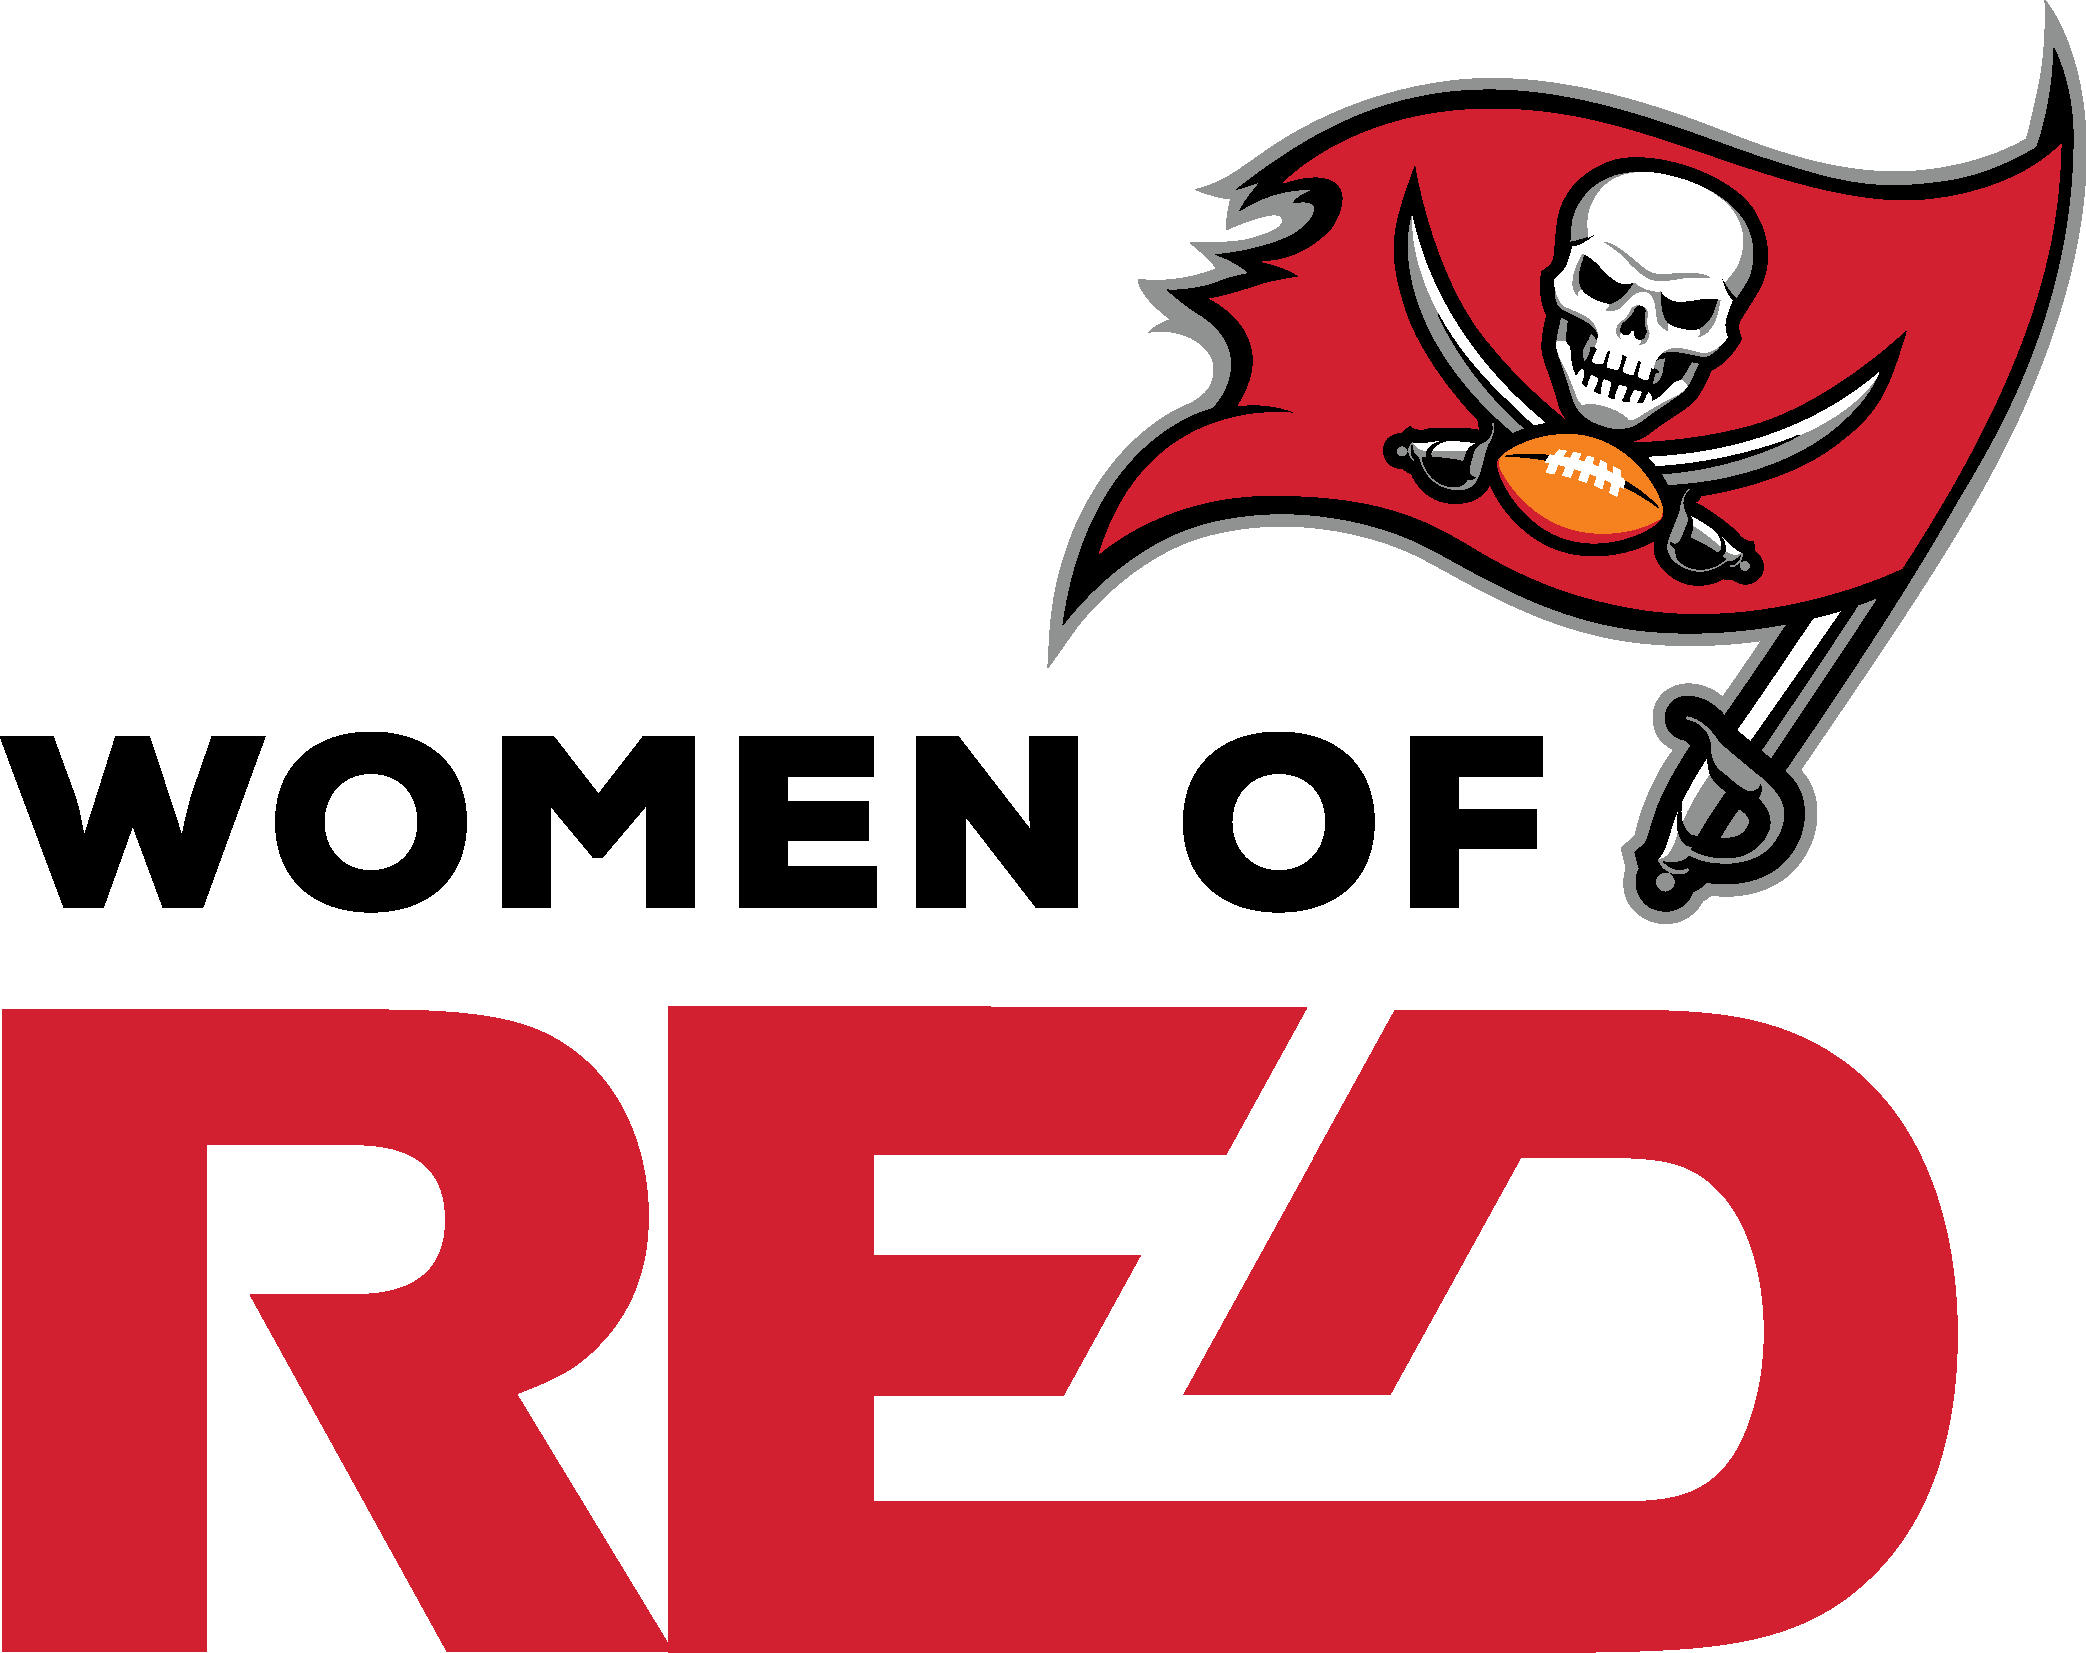 Women of RED: The Invasion